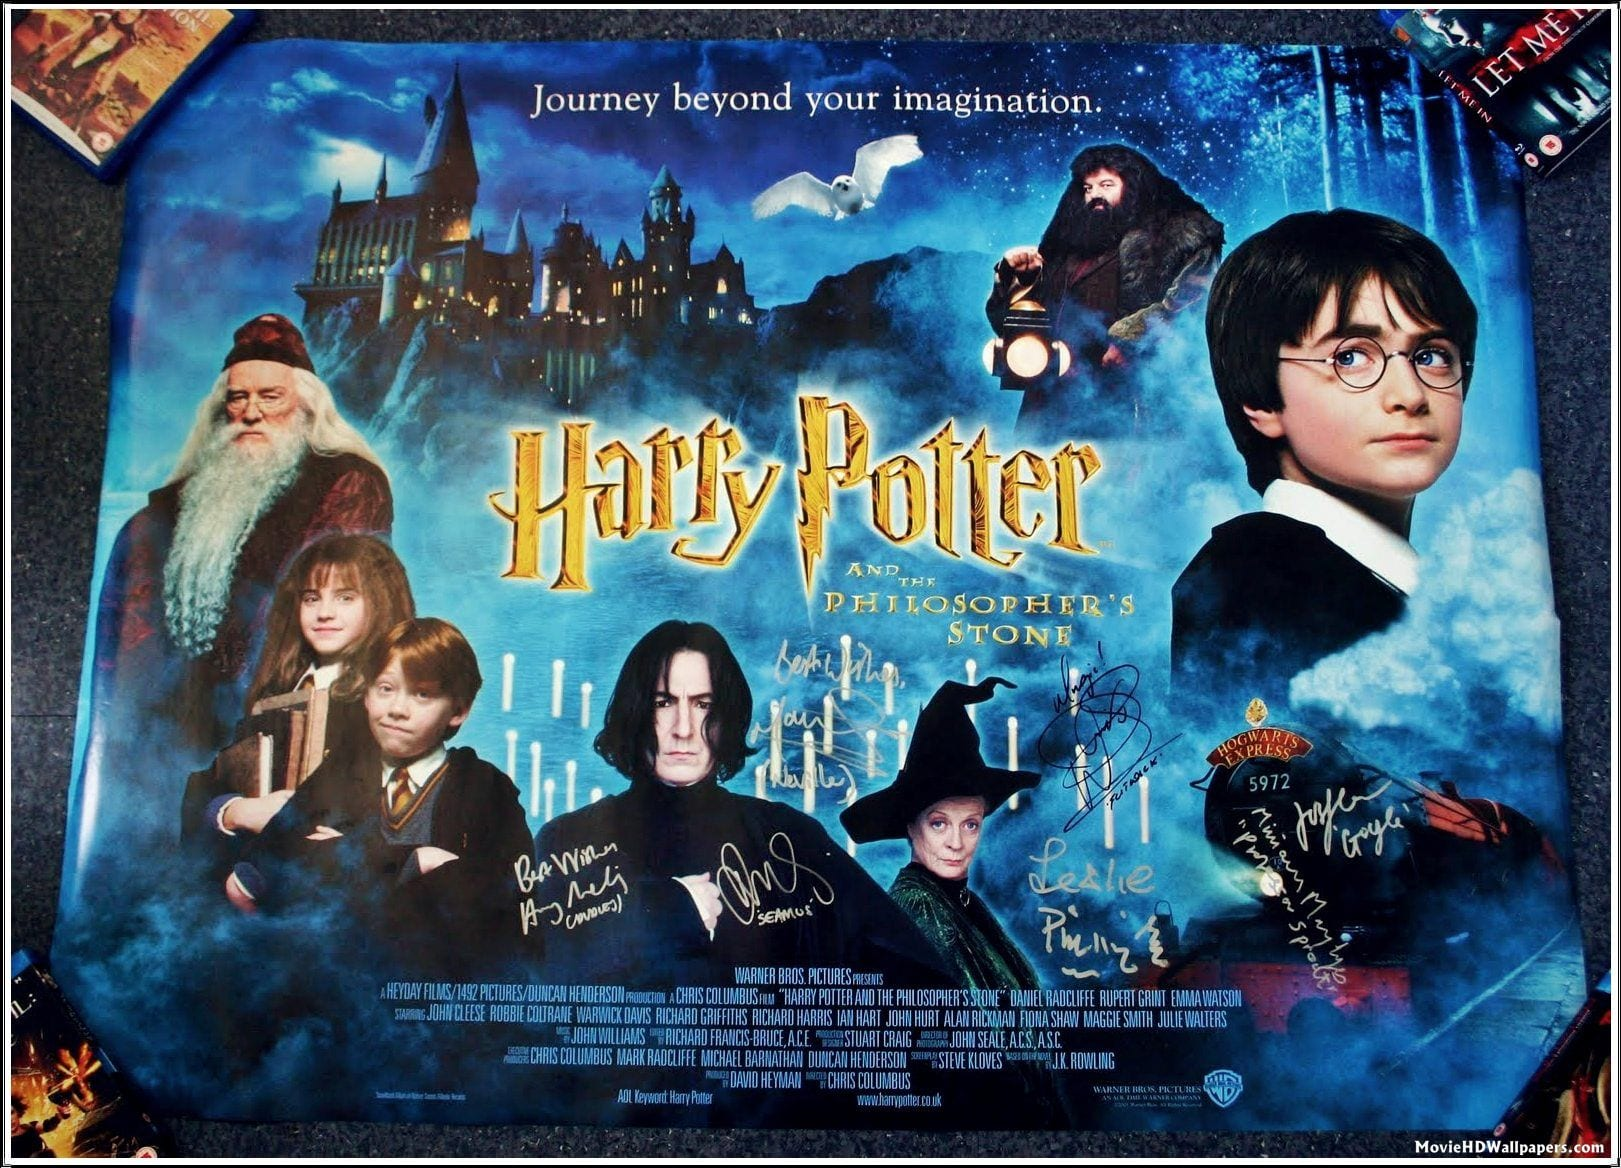 Harry Potter and the Philosopher's Stone (2001) Poster and All The Lead Actors